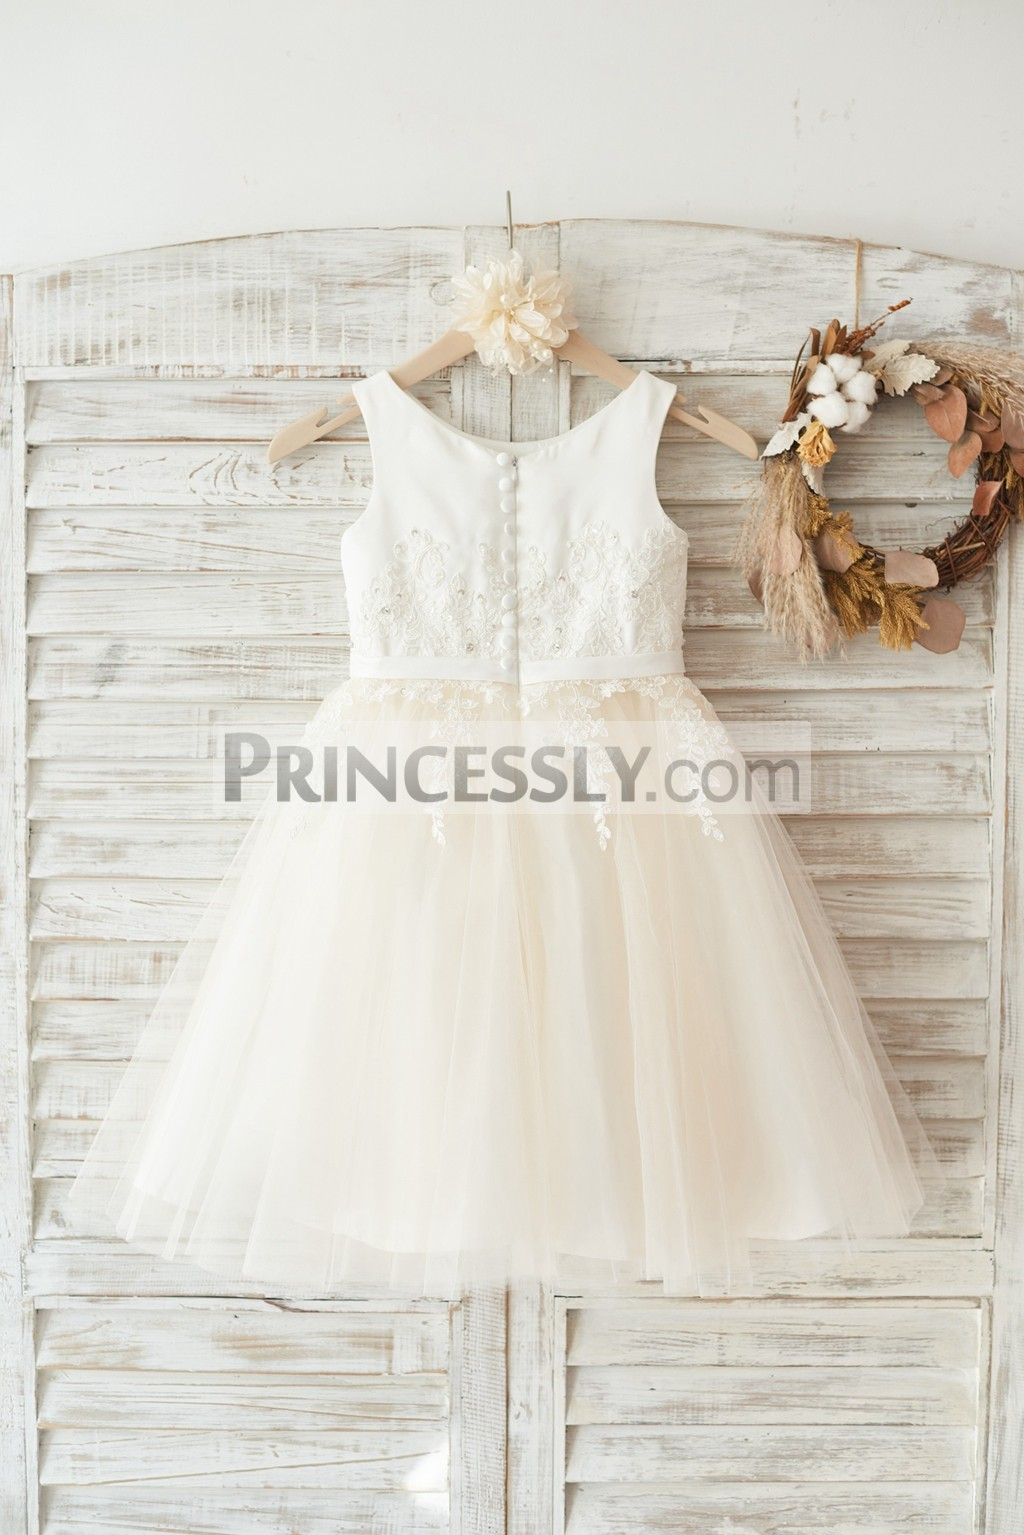 Ivory Satin Champagne Tulle Flower Girl Dress With Ivory